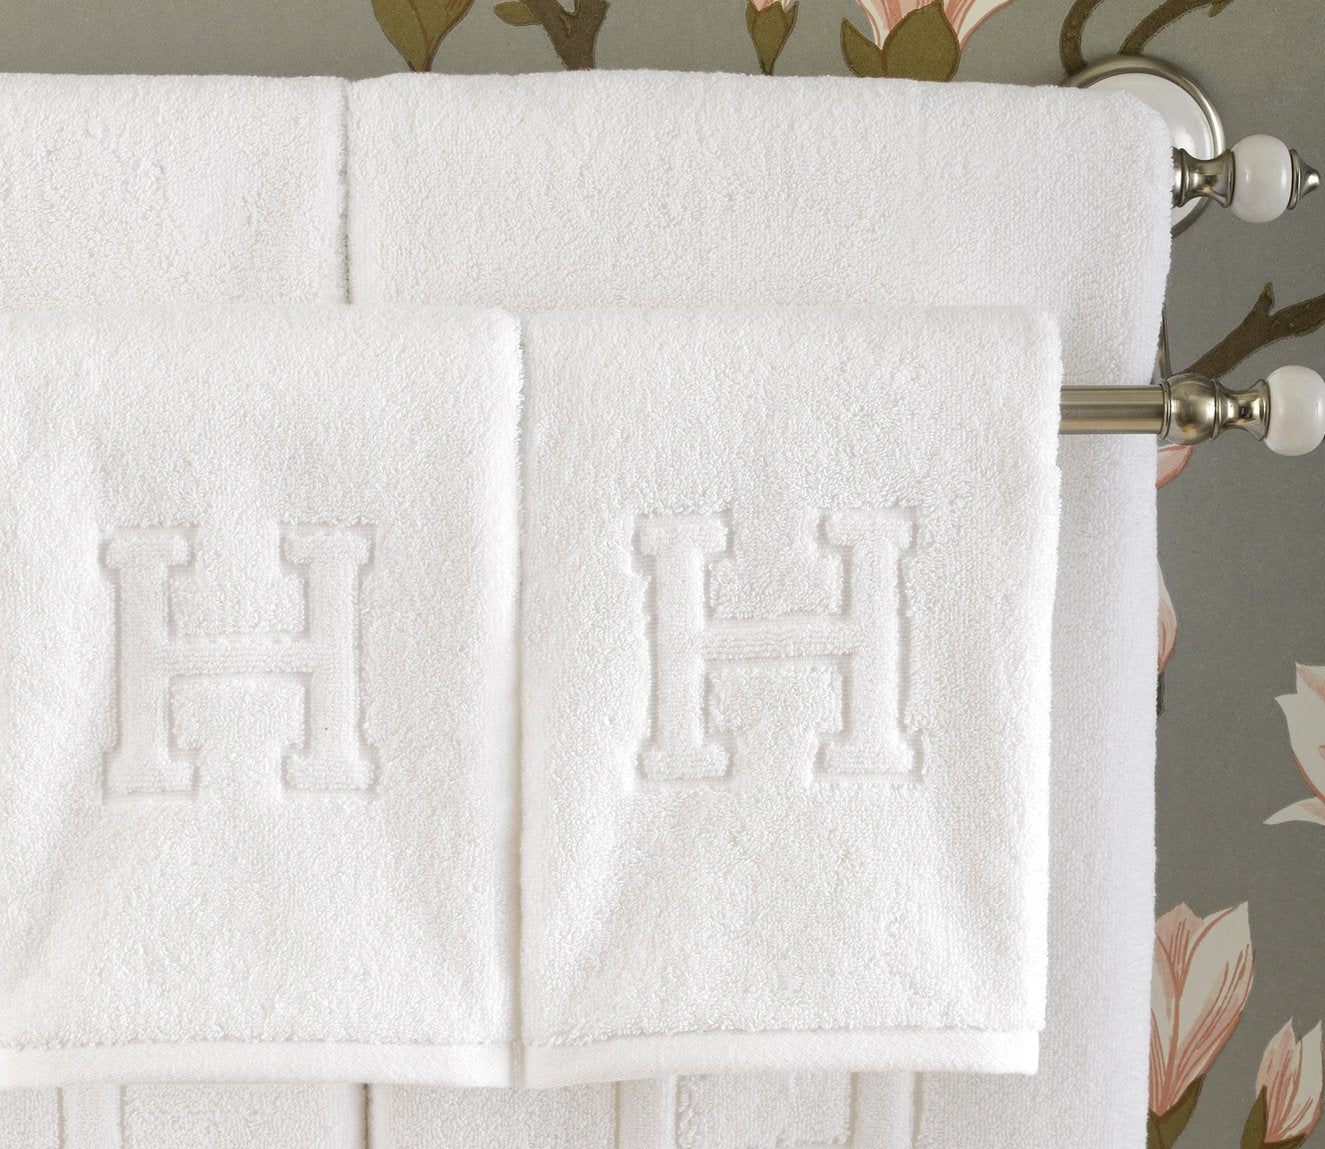 Auberge Face Cloth (Set of 4) Product Image 1